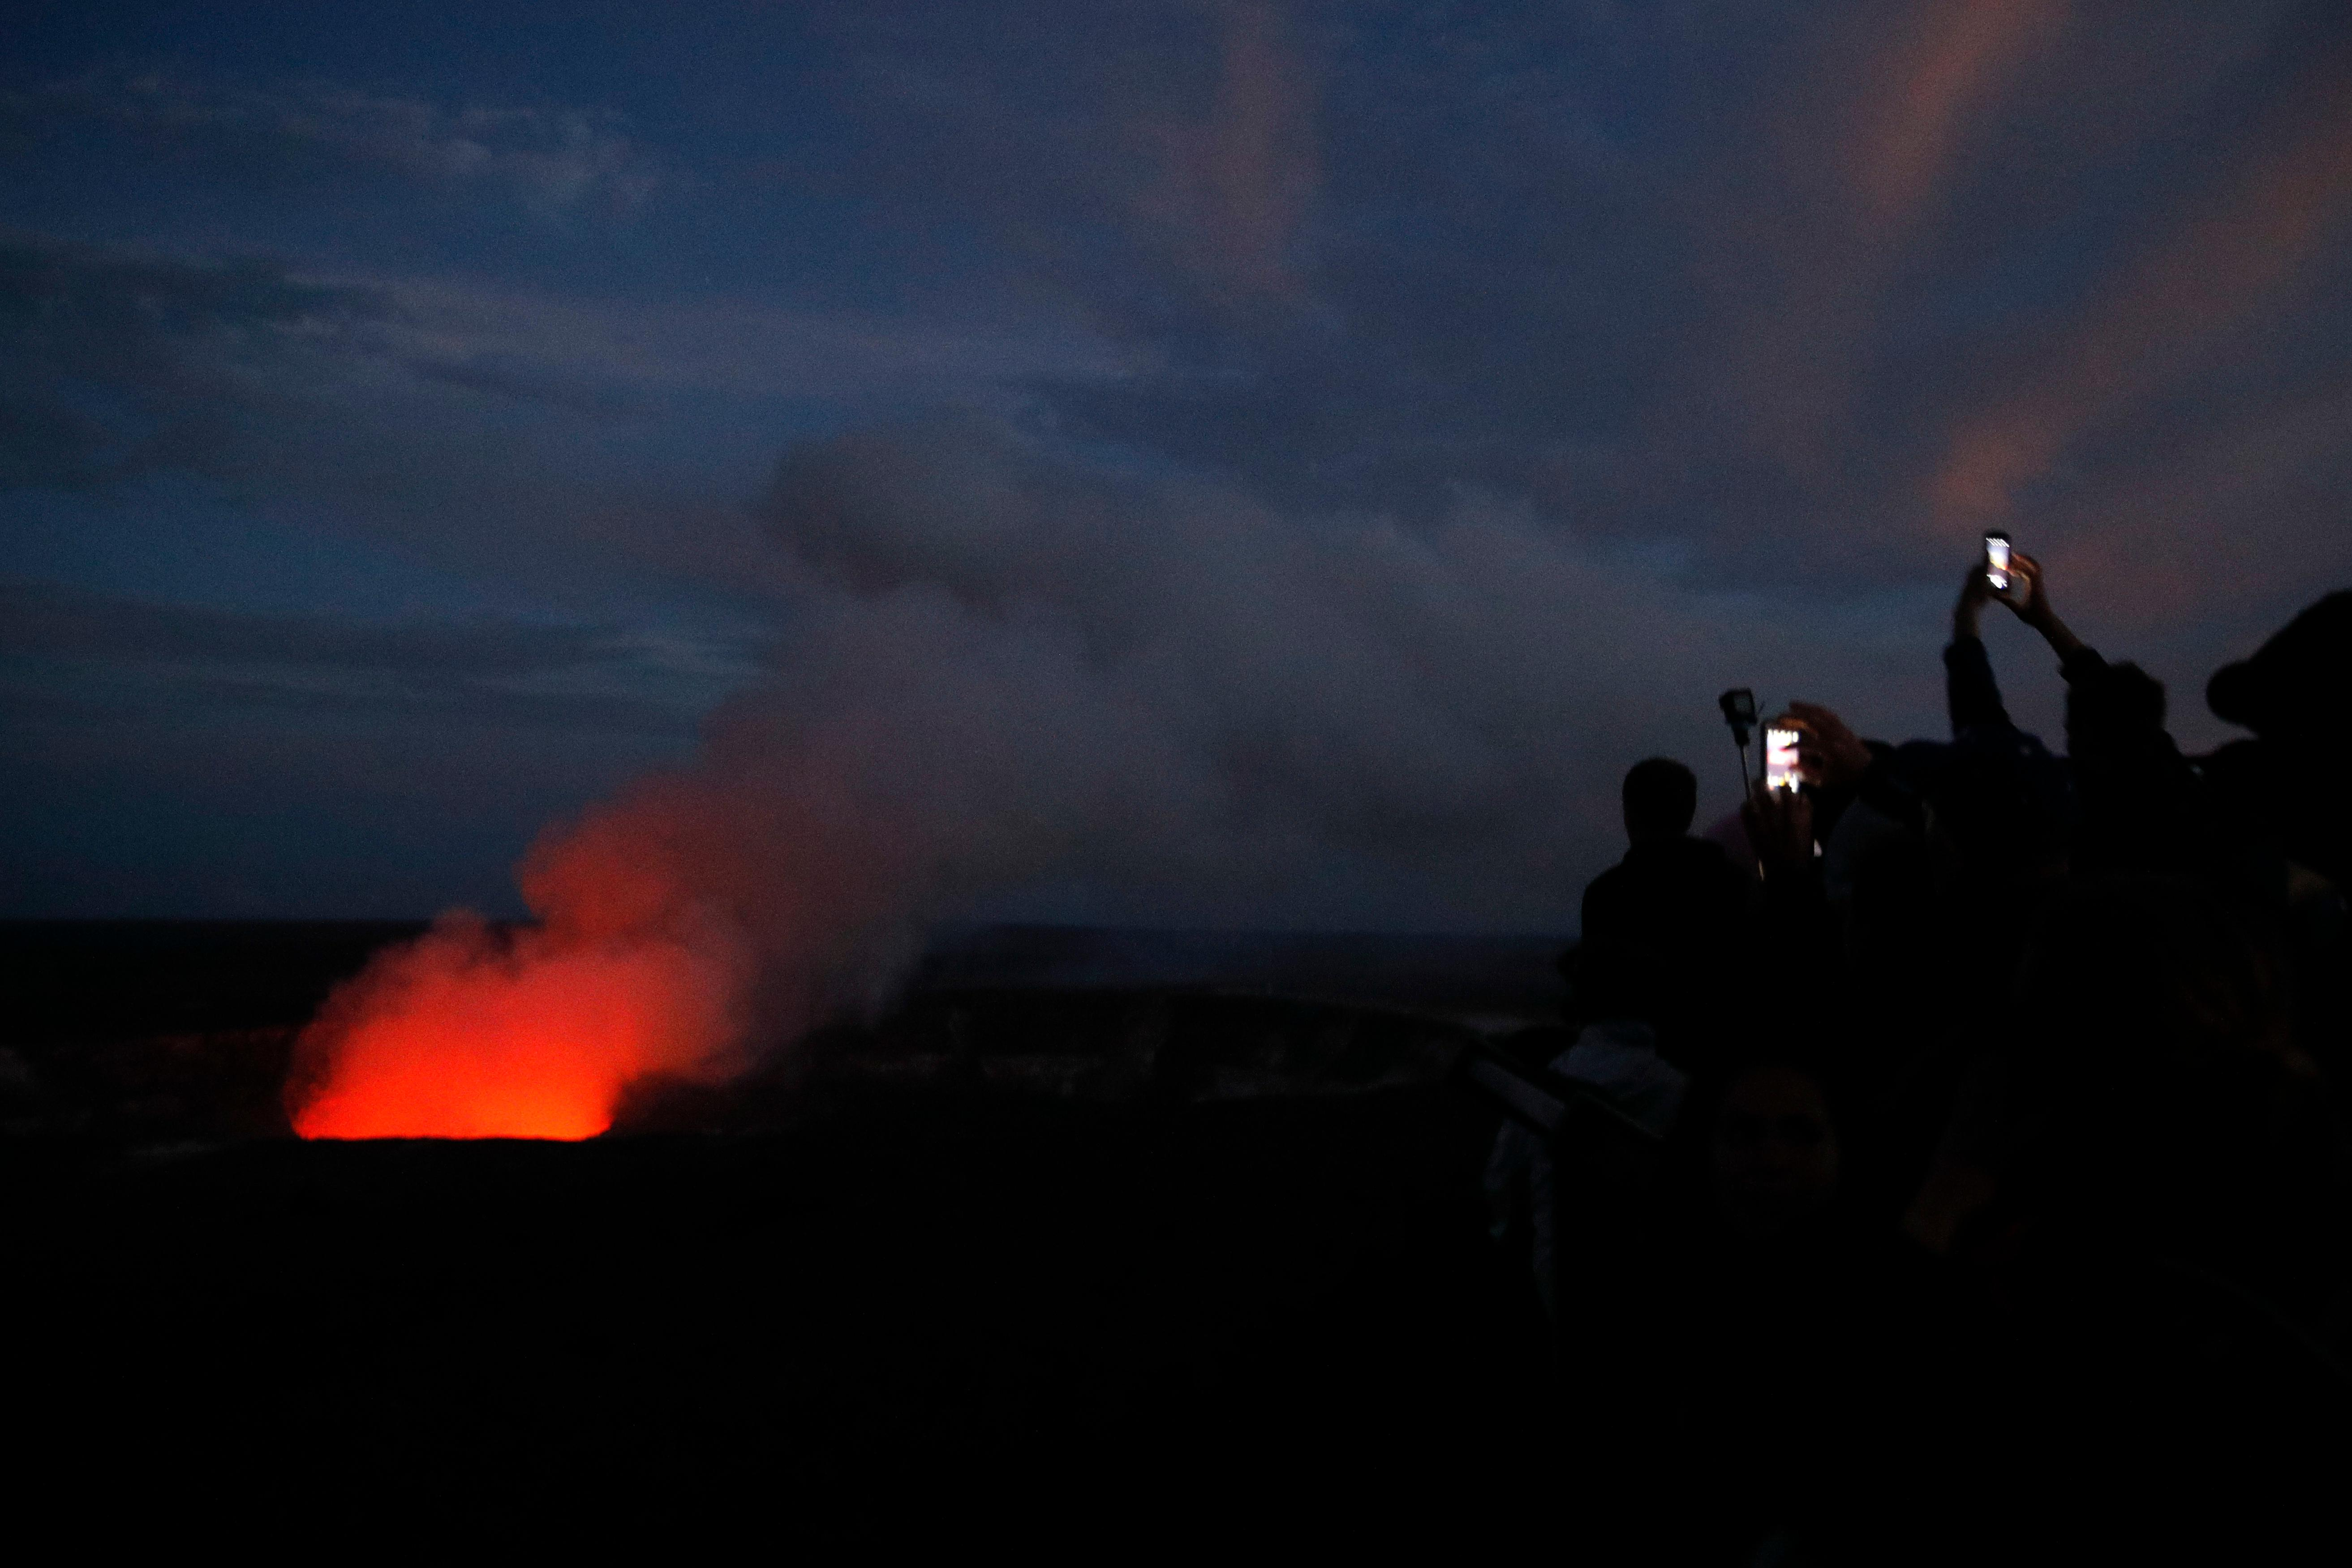 Visitors take pictures as Kilauea's summit crater glows red in Volcanoes National Park, Hawaii, Wednesday, May 9, 2018. Geologists warned Wednesday that Hawaii's Kilauea volcano could erupt explosively and send boulders, rocks and ash into the air around its summit in the coming weeks. (AP Photo/Jae C. Hong)